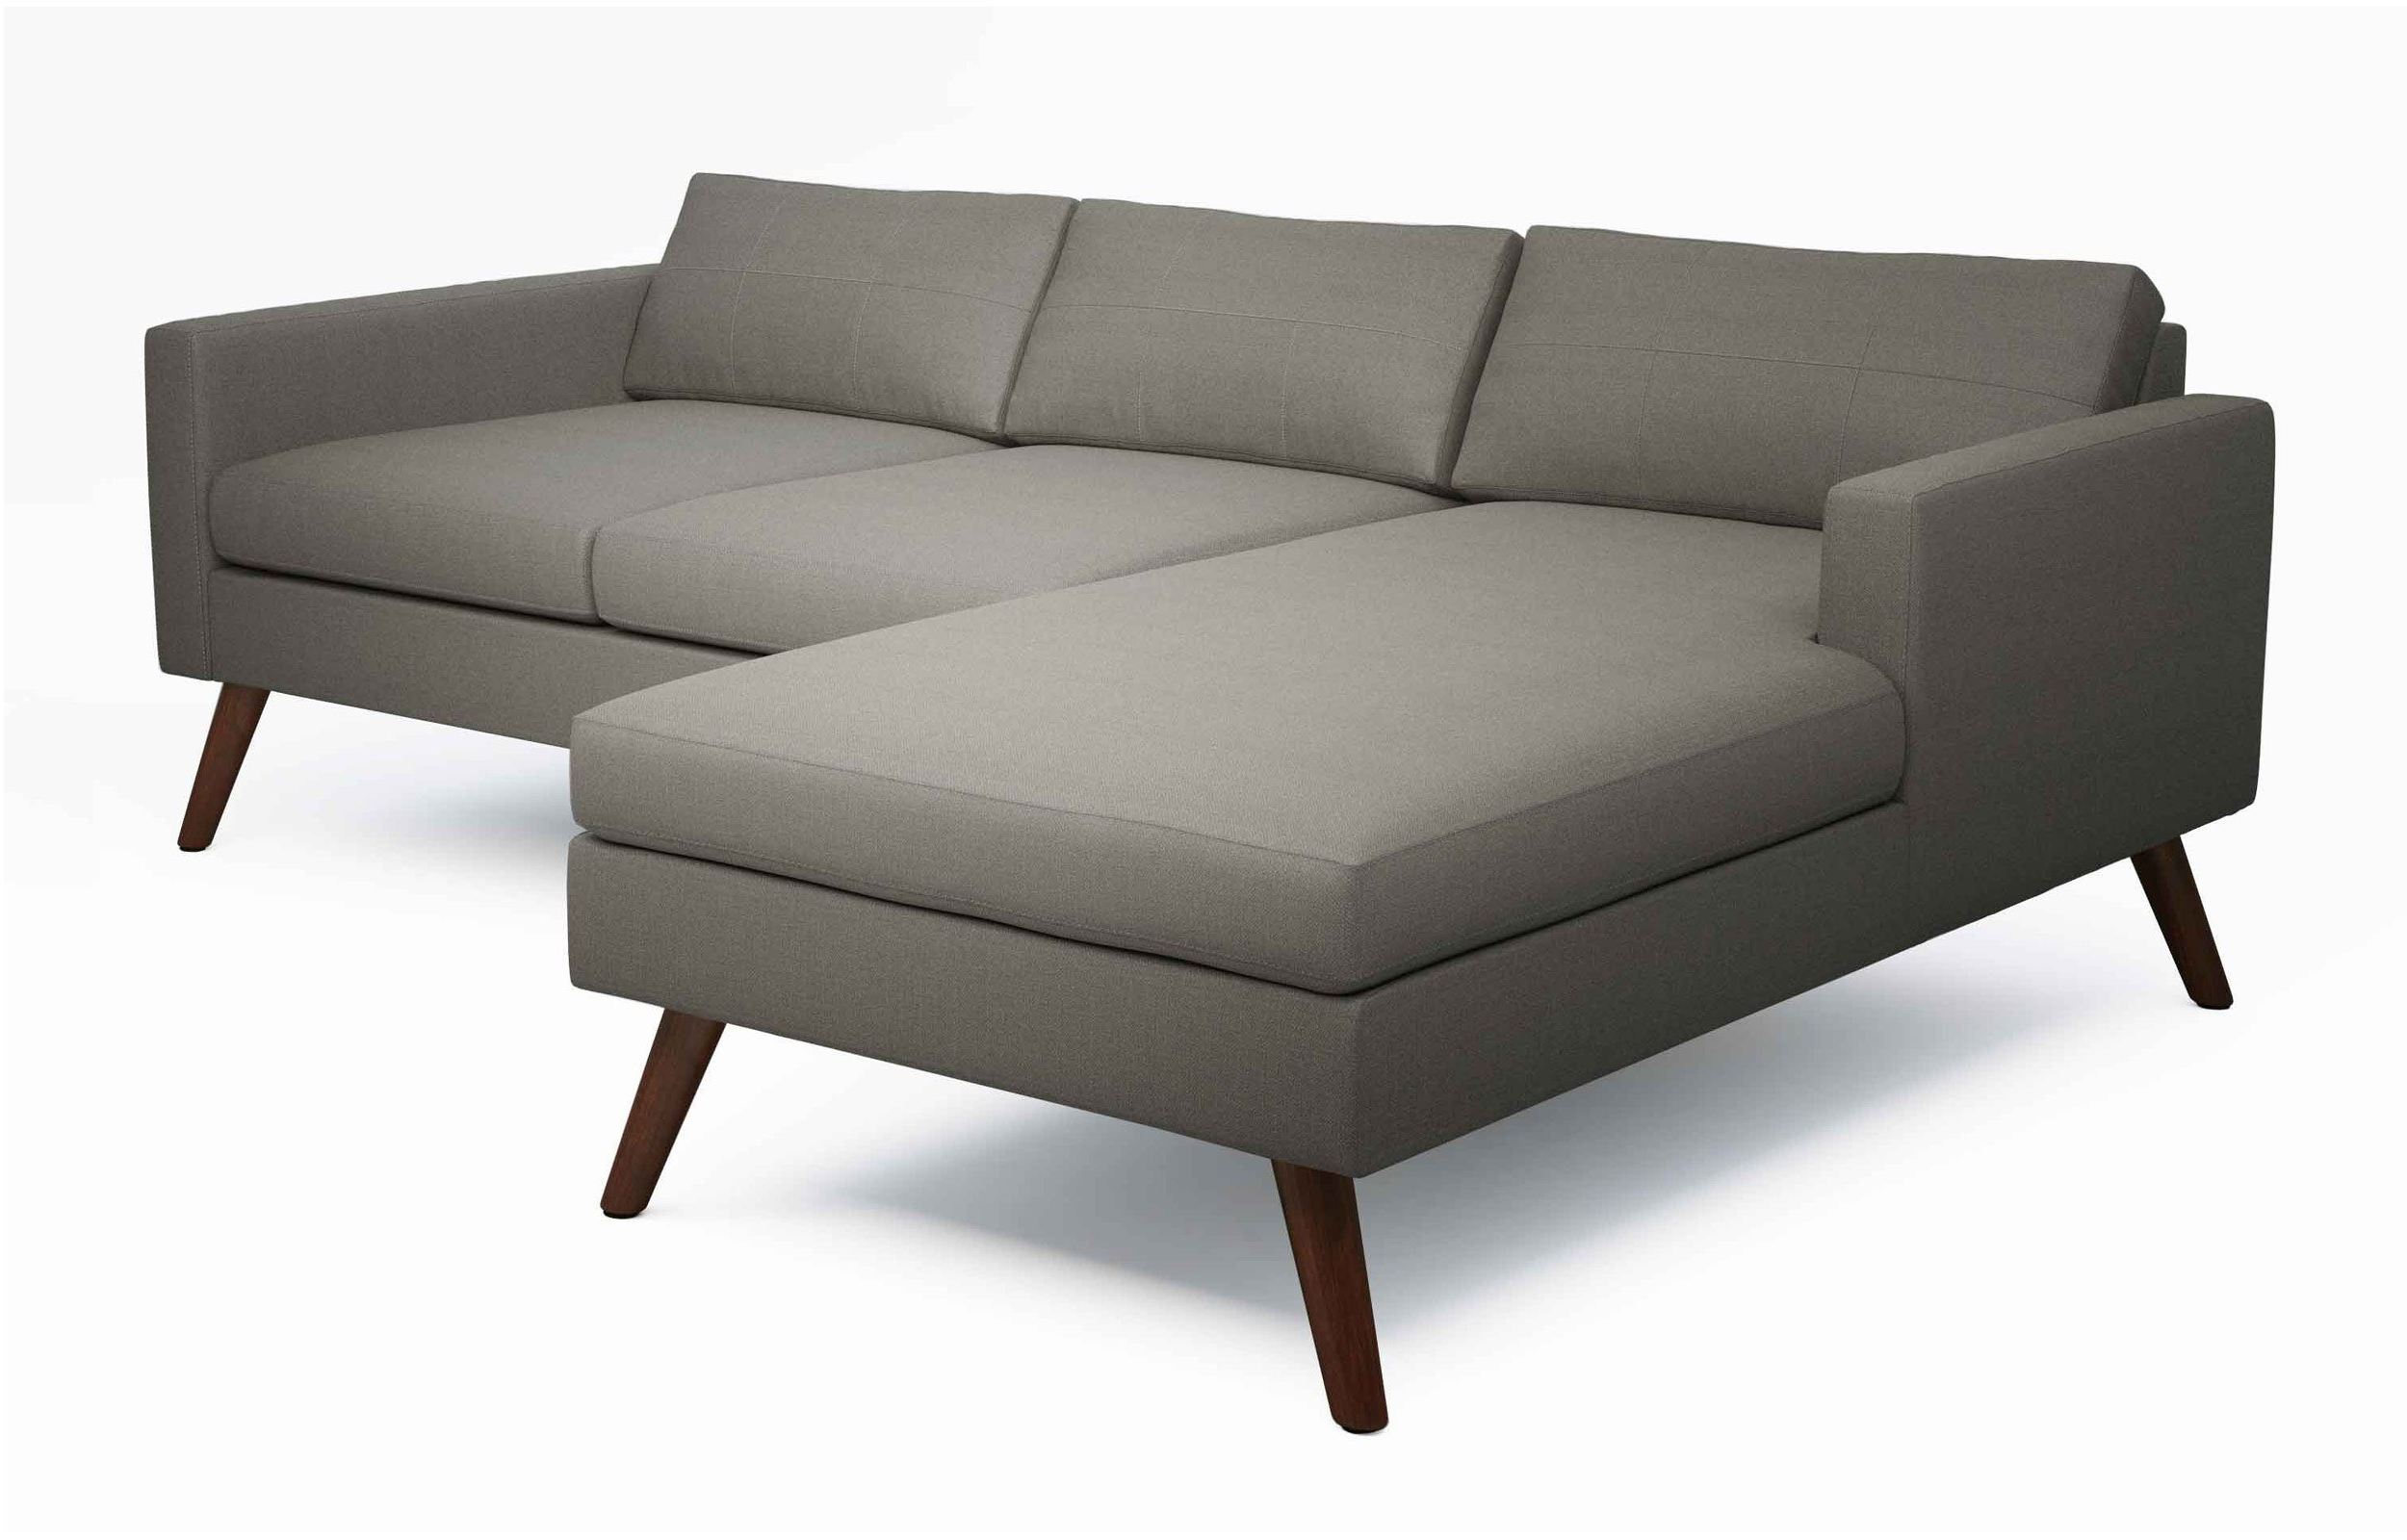 2018 Mcculla Sofa Sectionals With Reversible Chaise Inside Cheerful 30136 Sl Sc 1 Sectionals Cello Sectional Coda Beach Front (View 1 of 20)